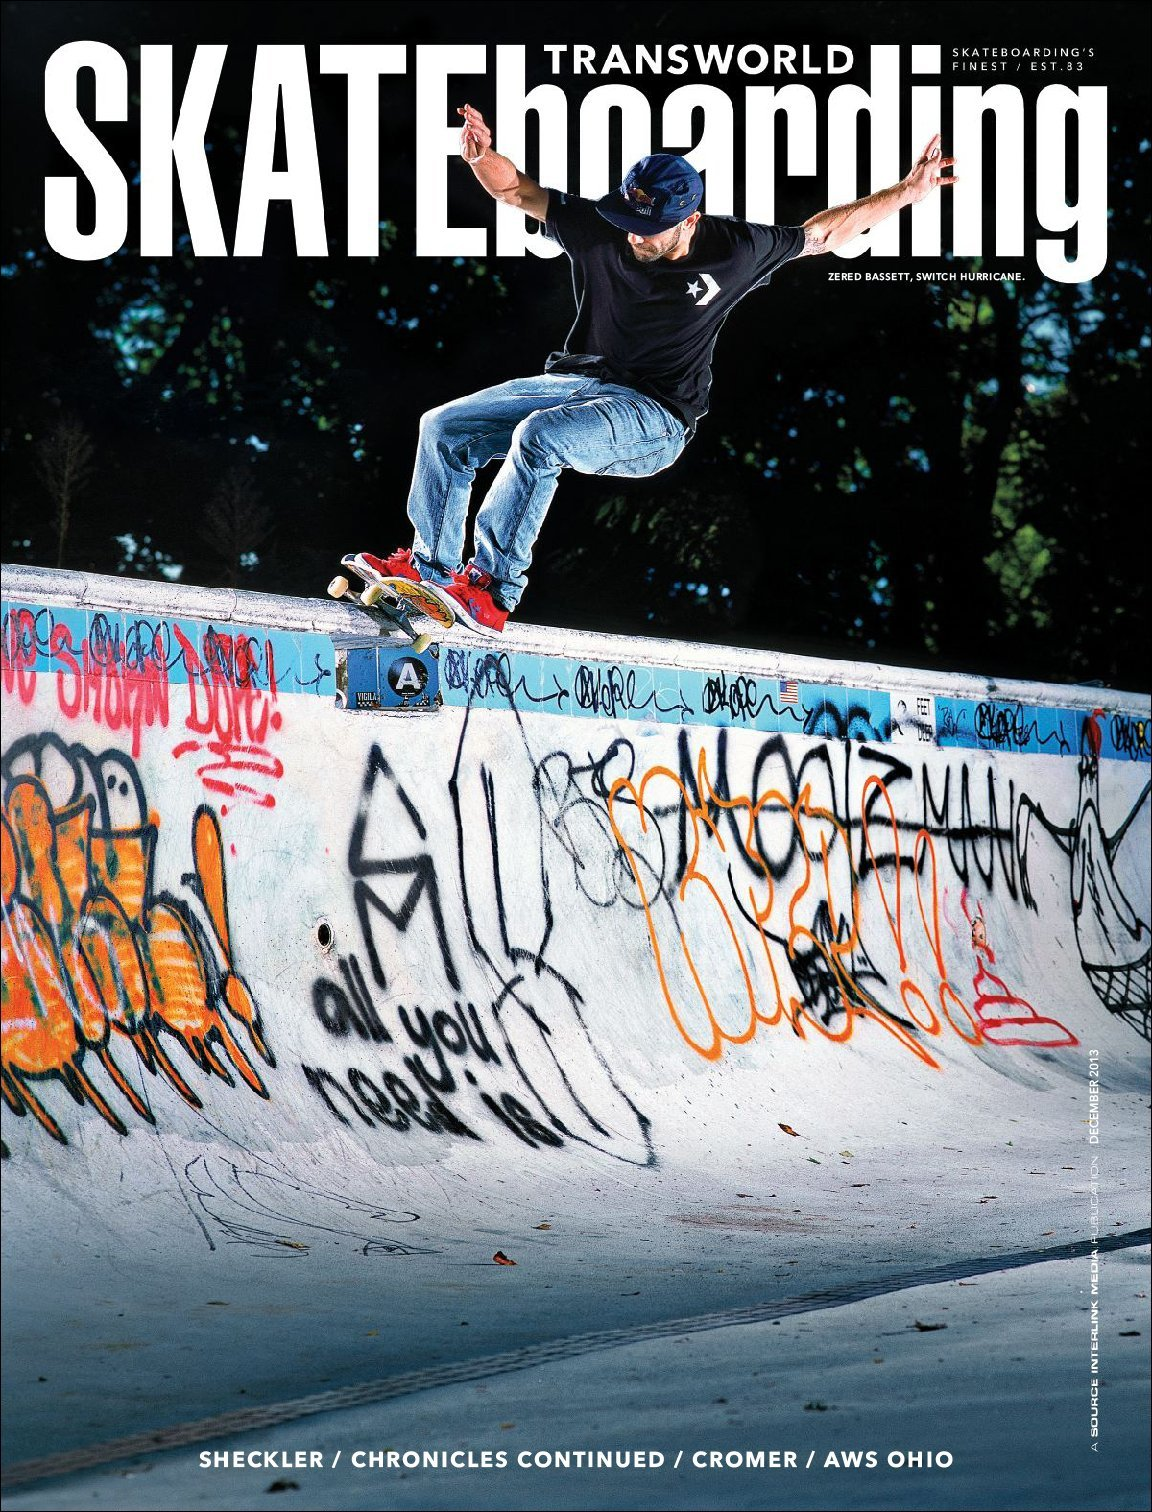 This is switch. Switch hurricane, Transworld Skateboarding, December 2013.